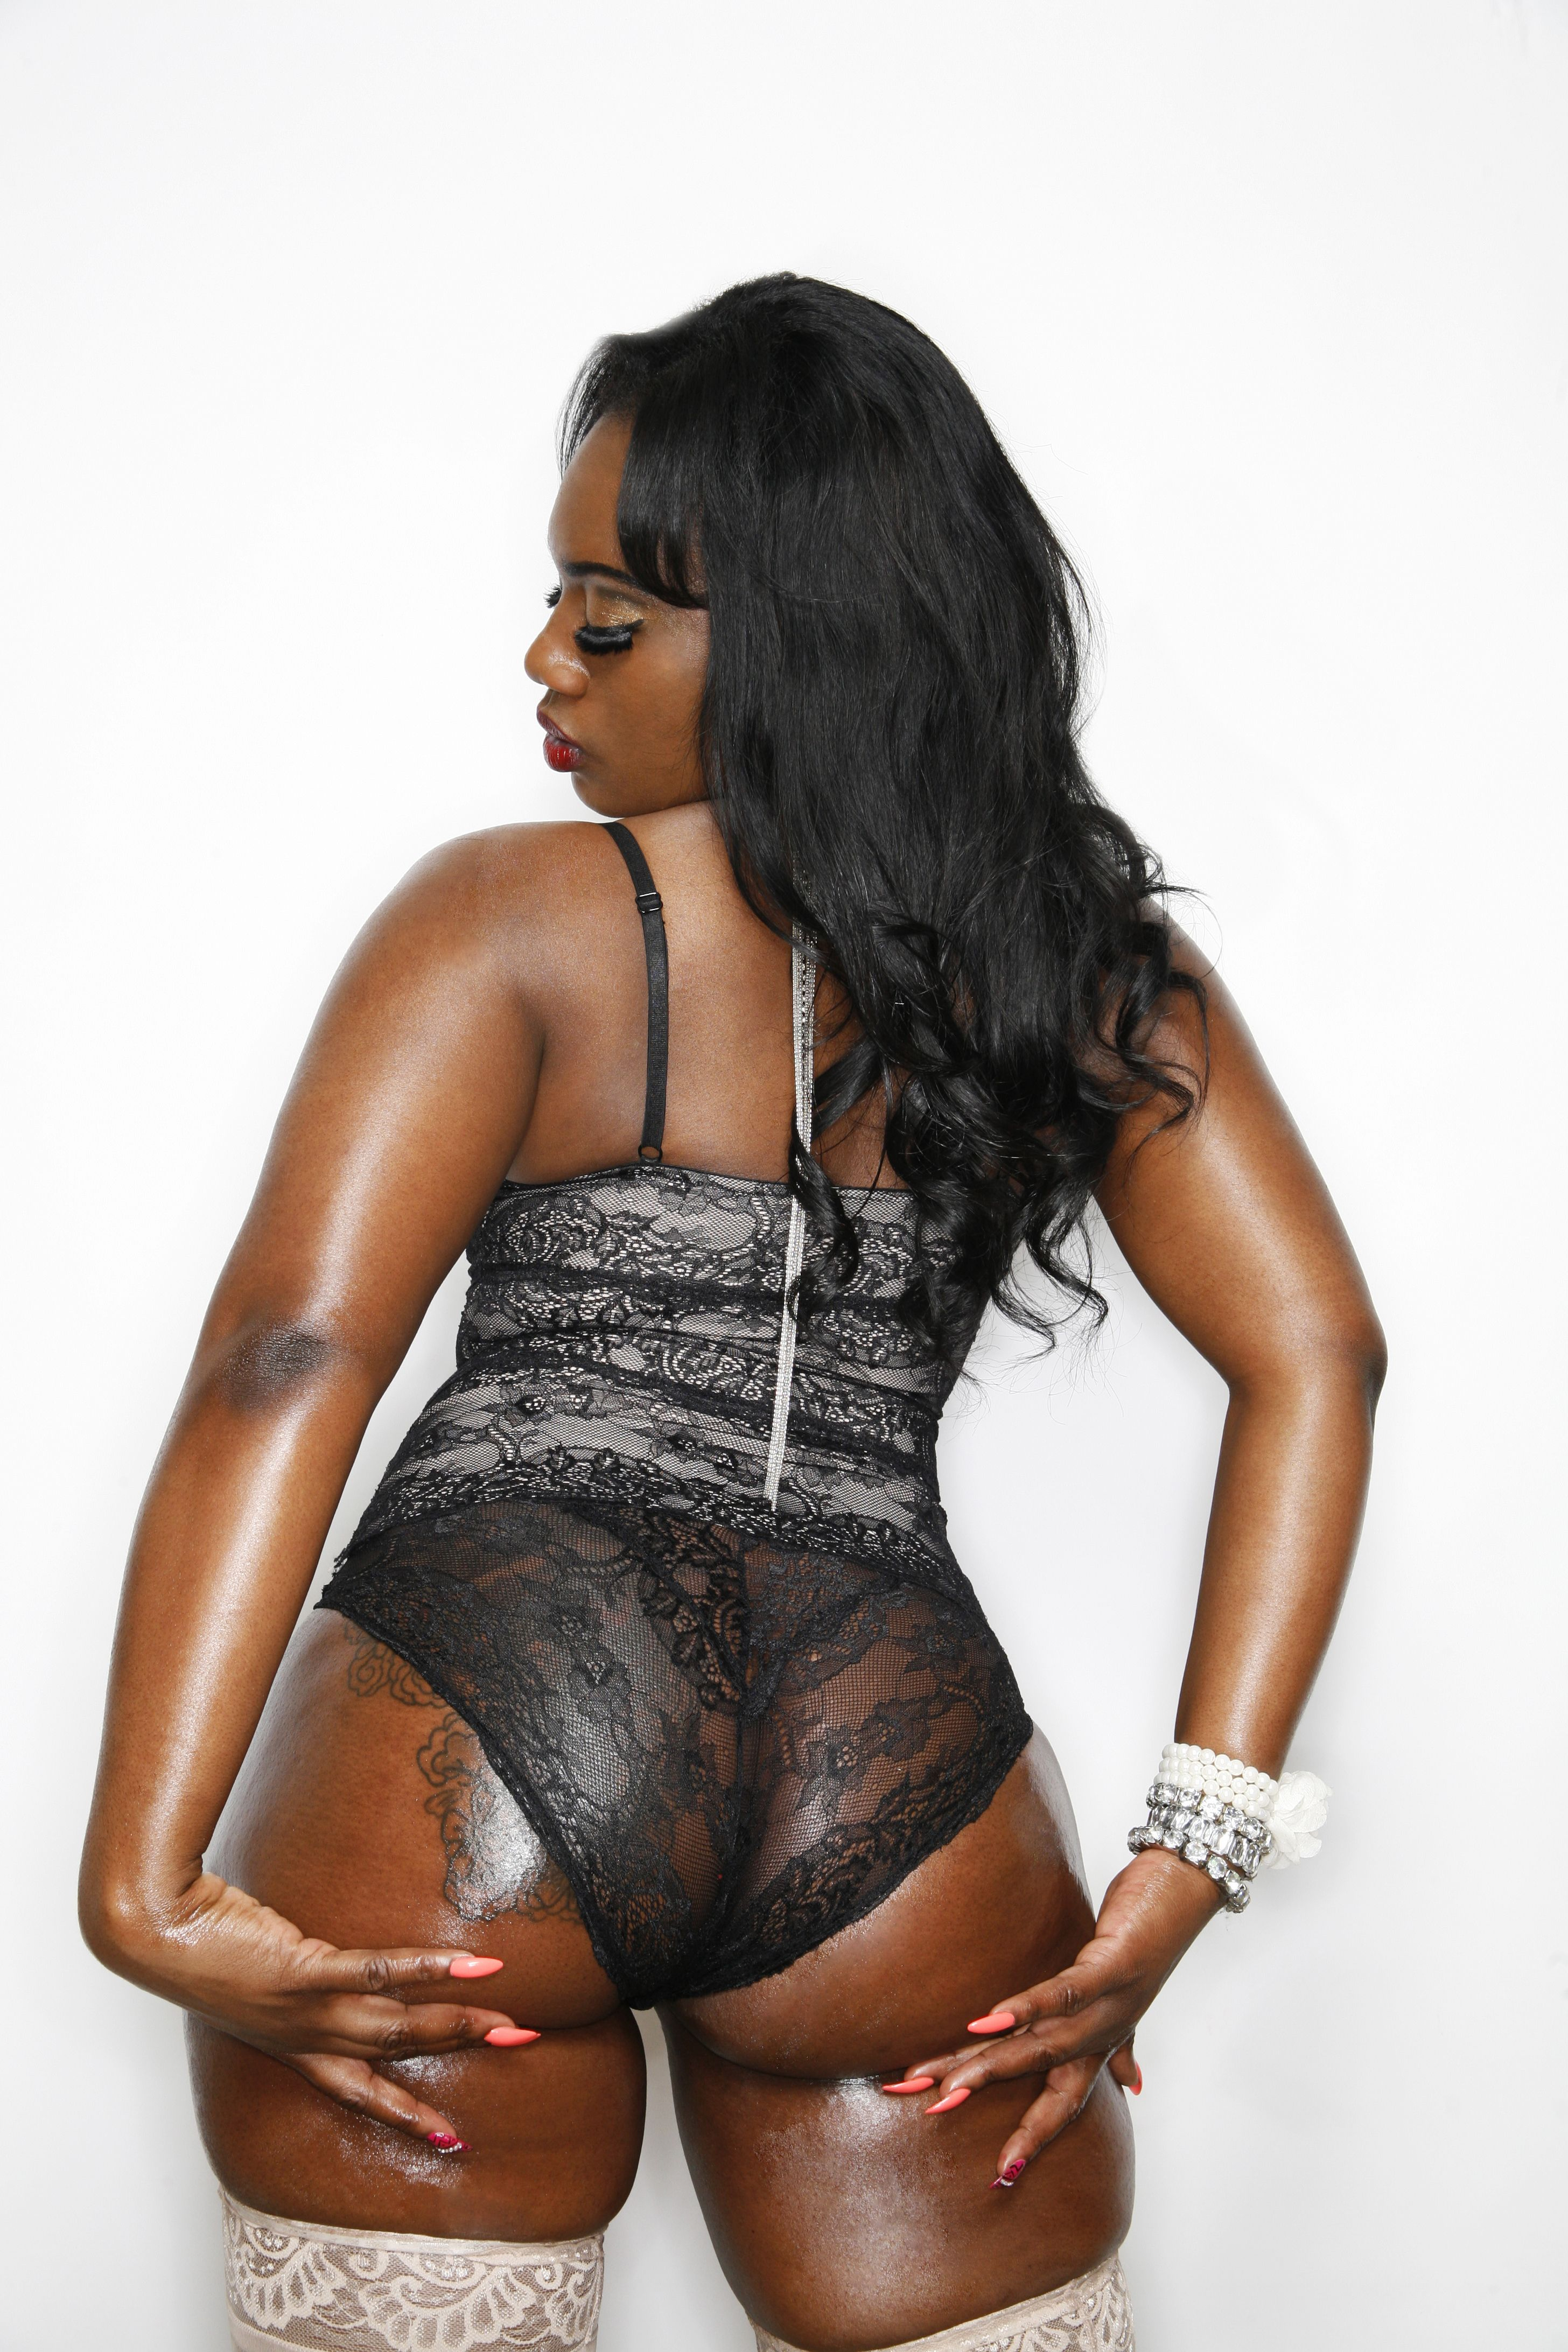 first pin. #modeling #booty #pornstar #sexy #fit #lingerie #ebony